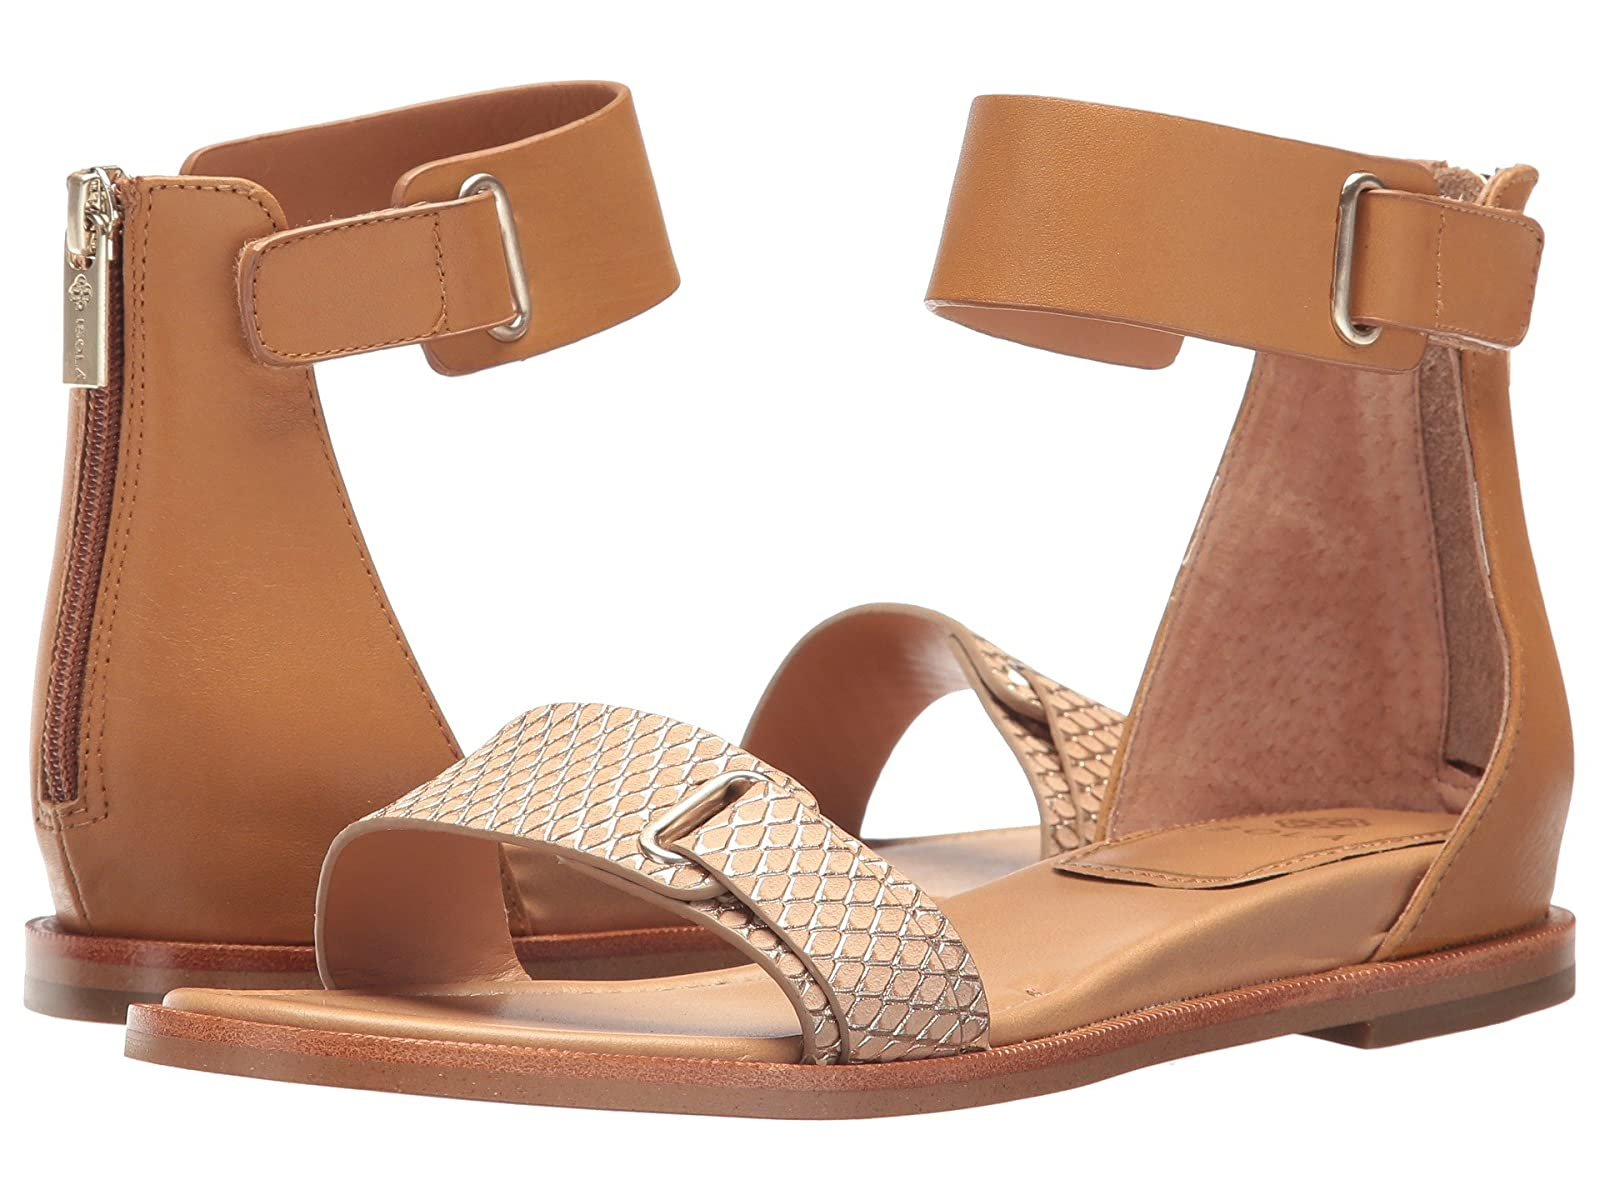 Isola SavinaCheap and distinctive eye-catching shoes